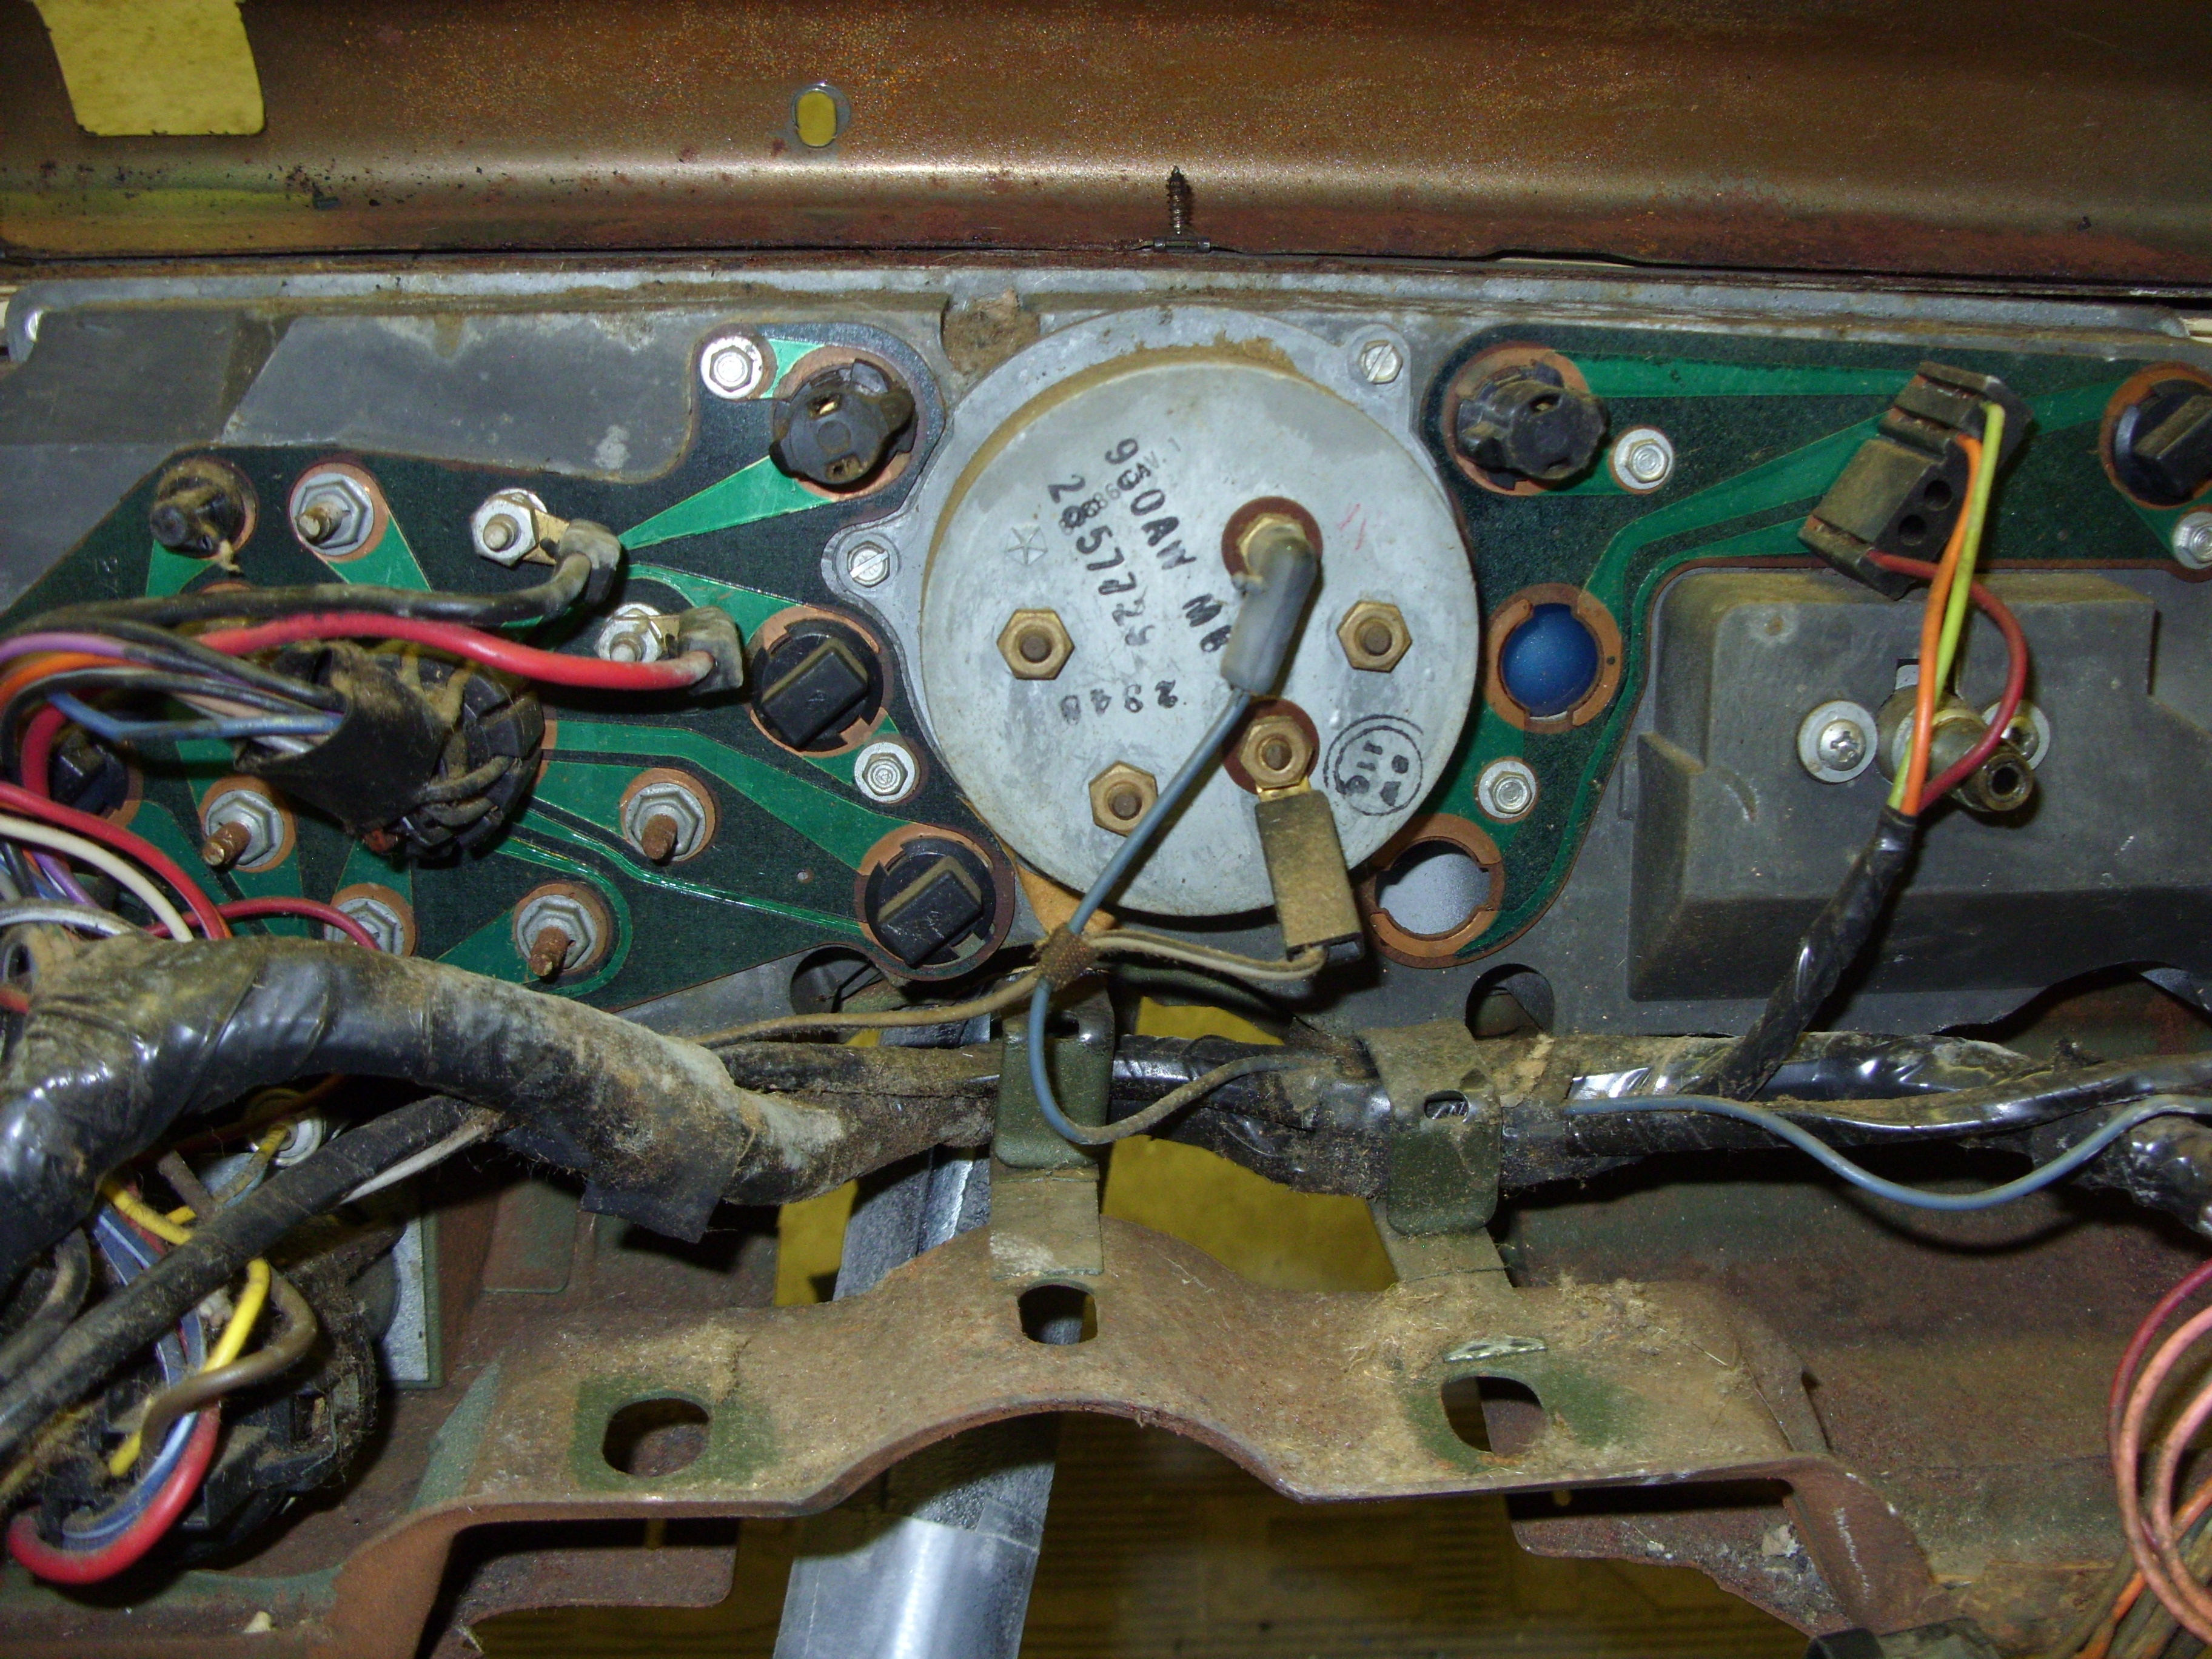 67 Barracuda Wiring Harness | Wiring Library